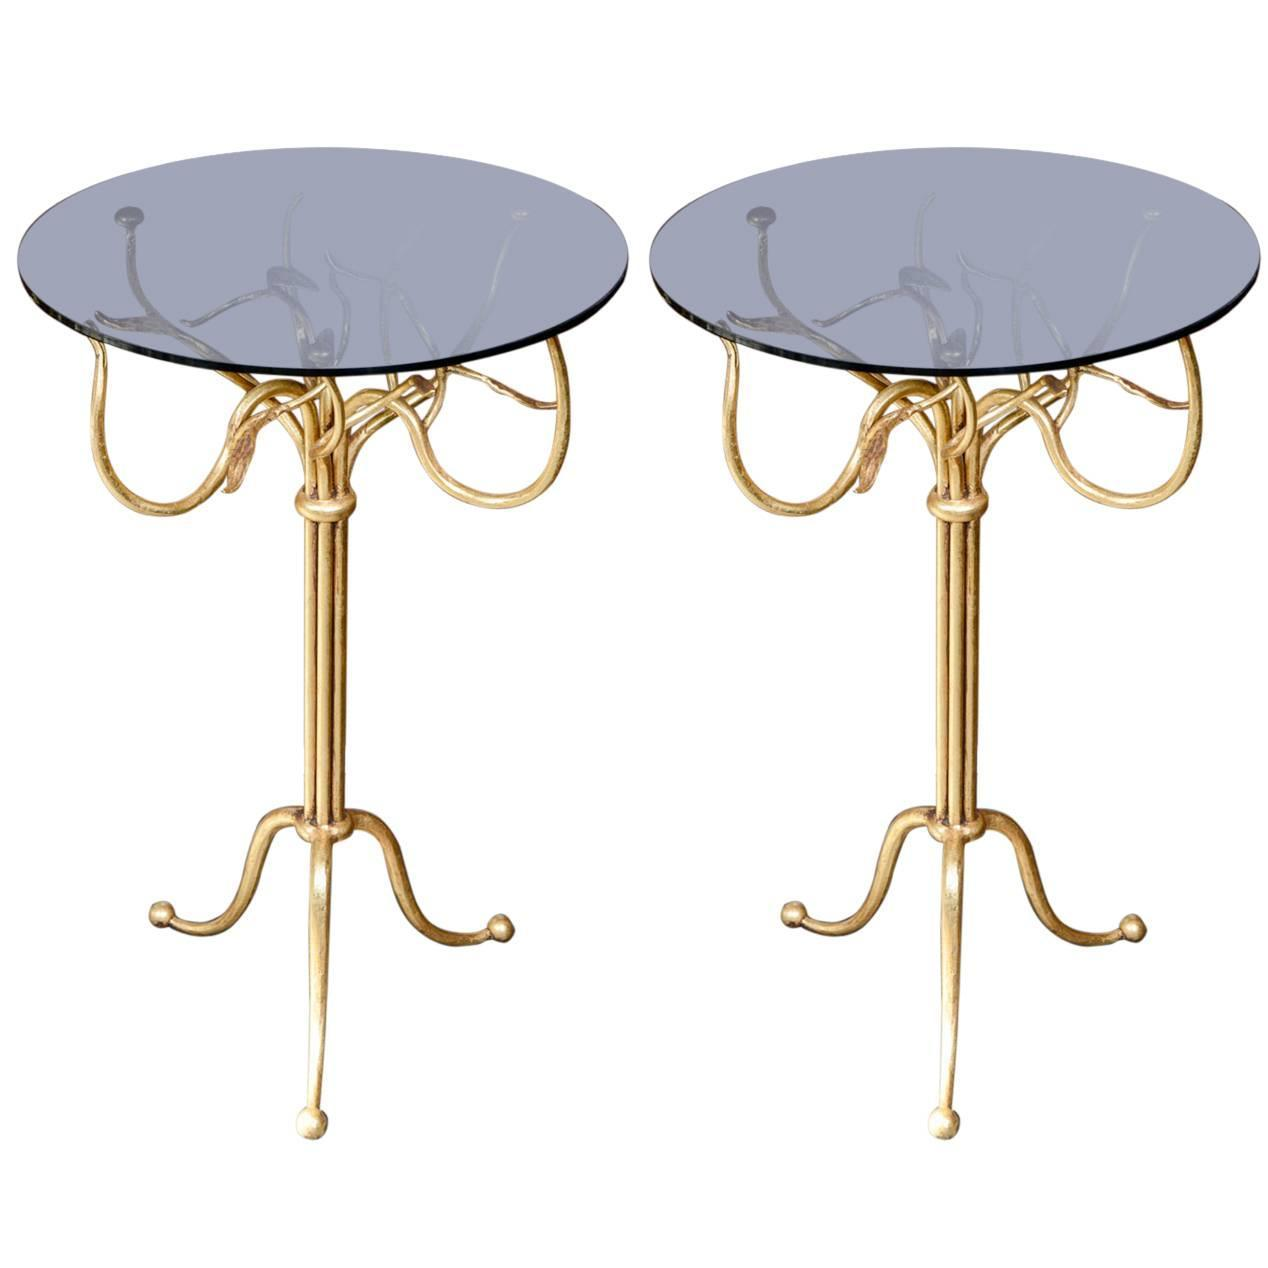 Pair of gilt wrought iron side tables for sale at 1stdibs for Wrought iron side table